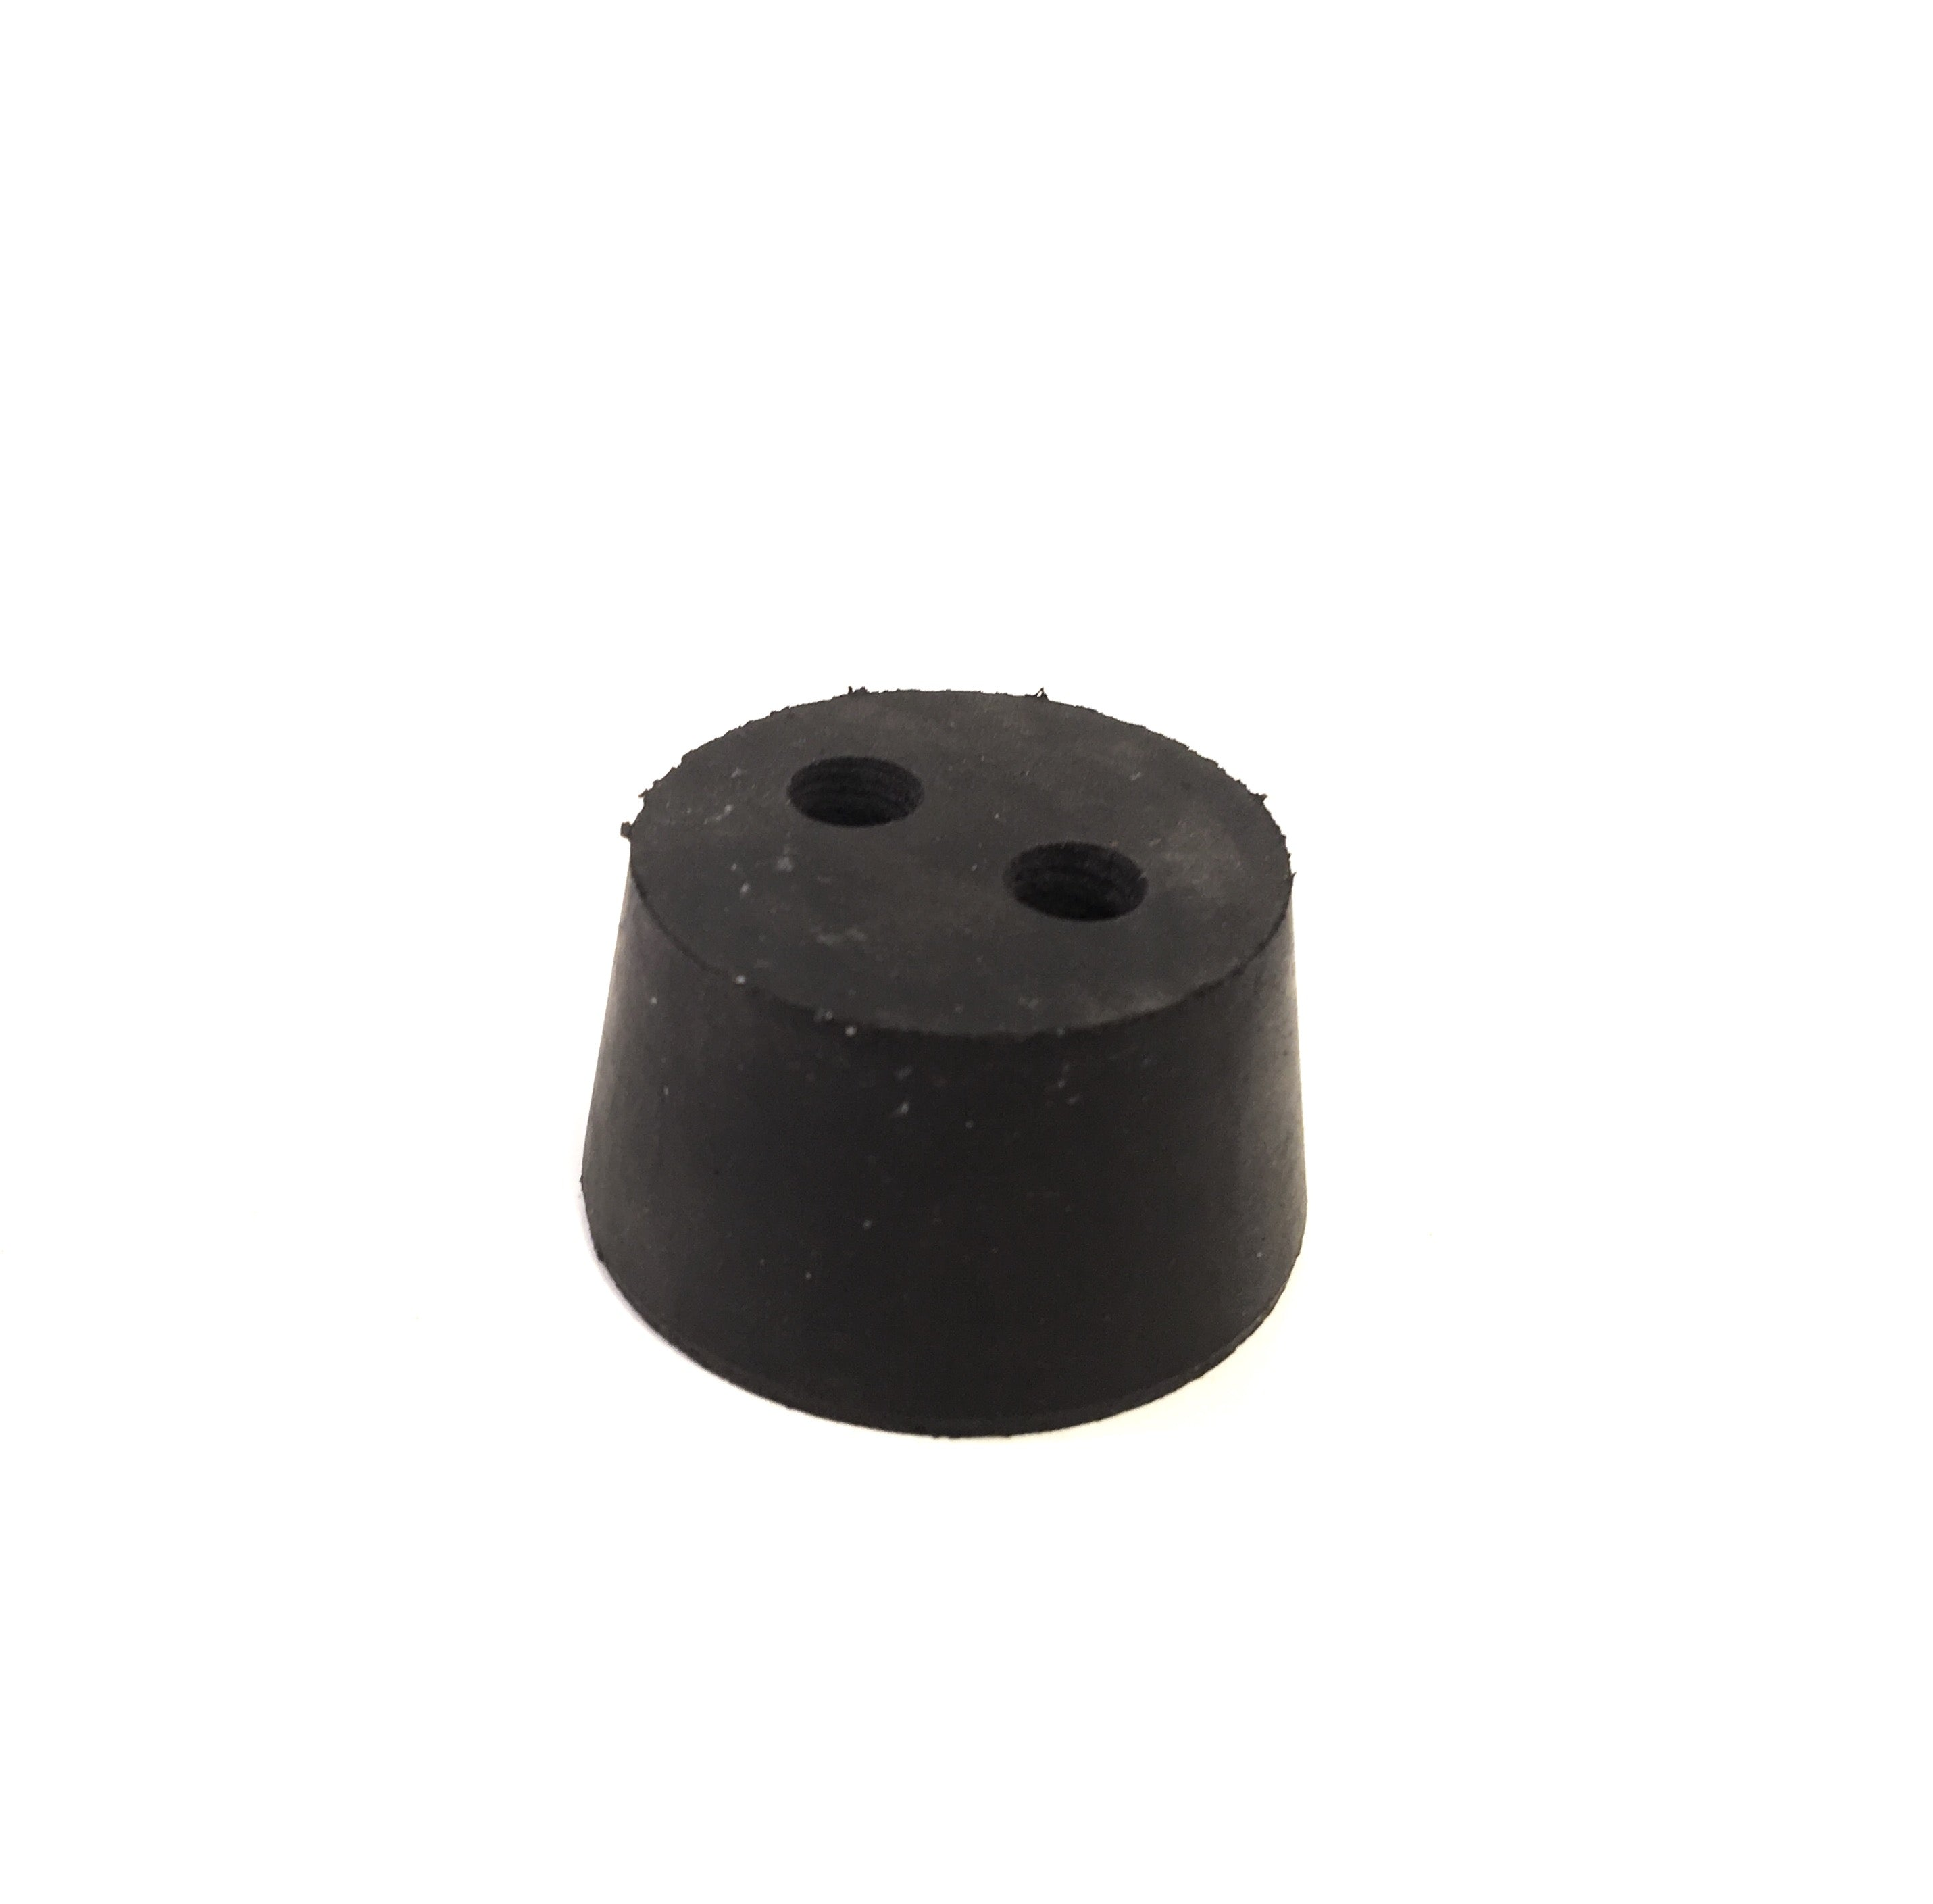 "#9 Rubber Stopper - w/ 2, 3/8"" holes"